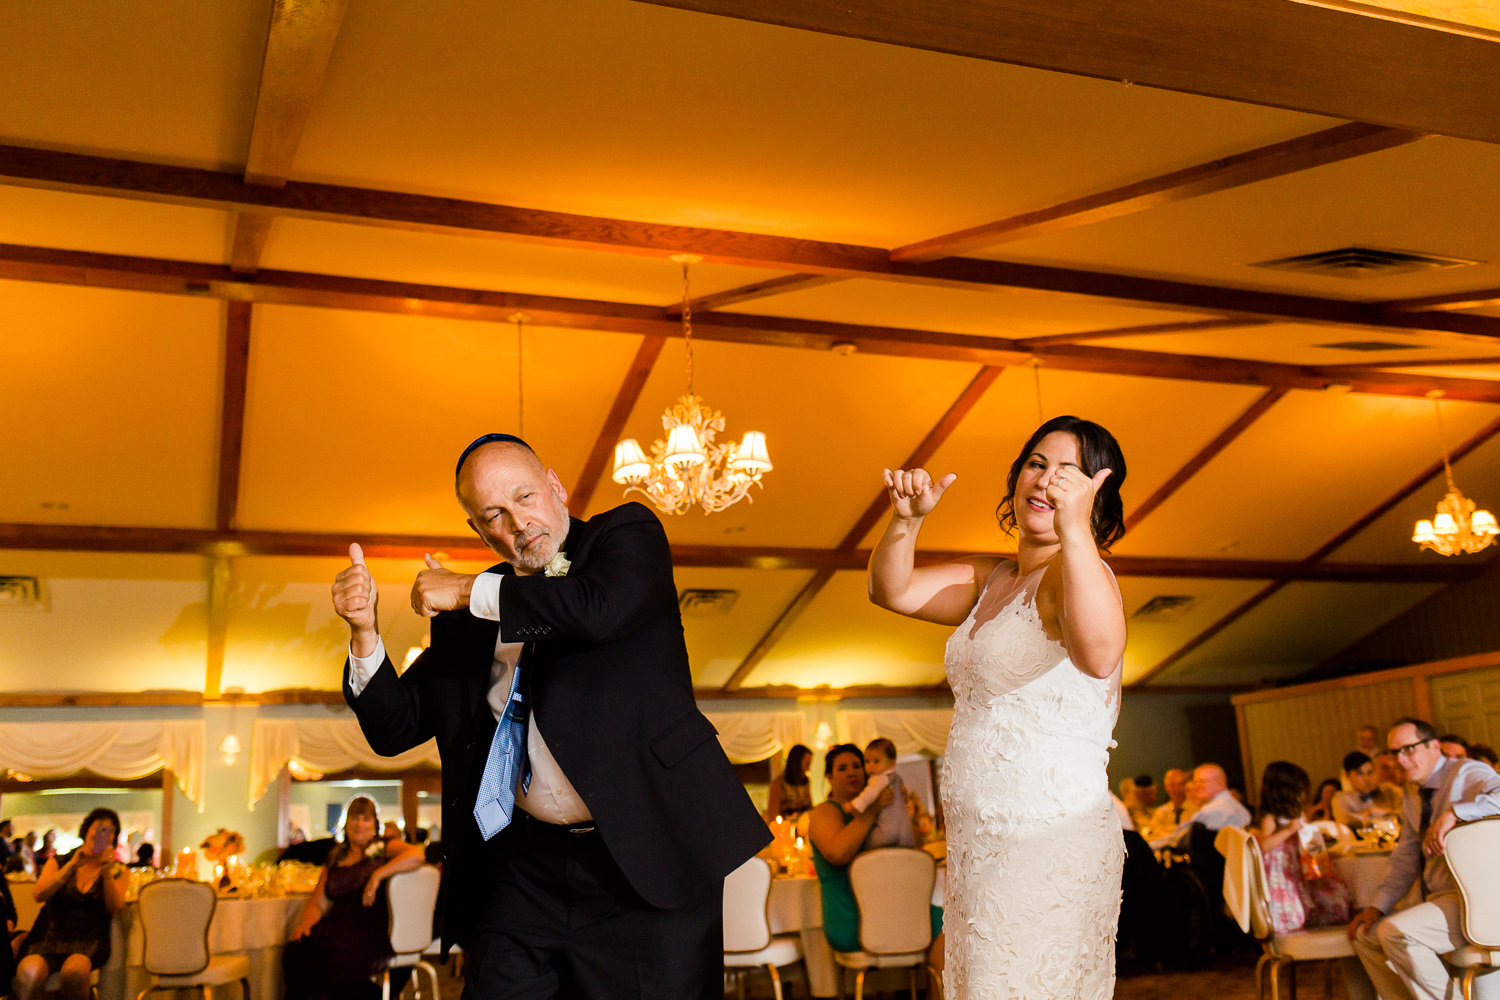 Bride does a funny dance with her father.